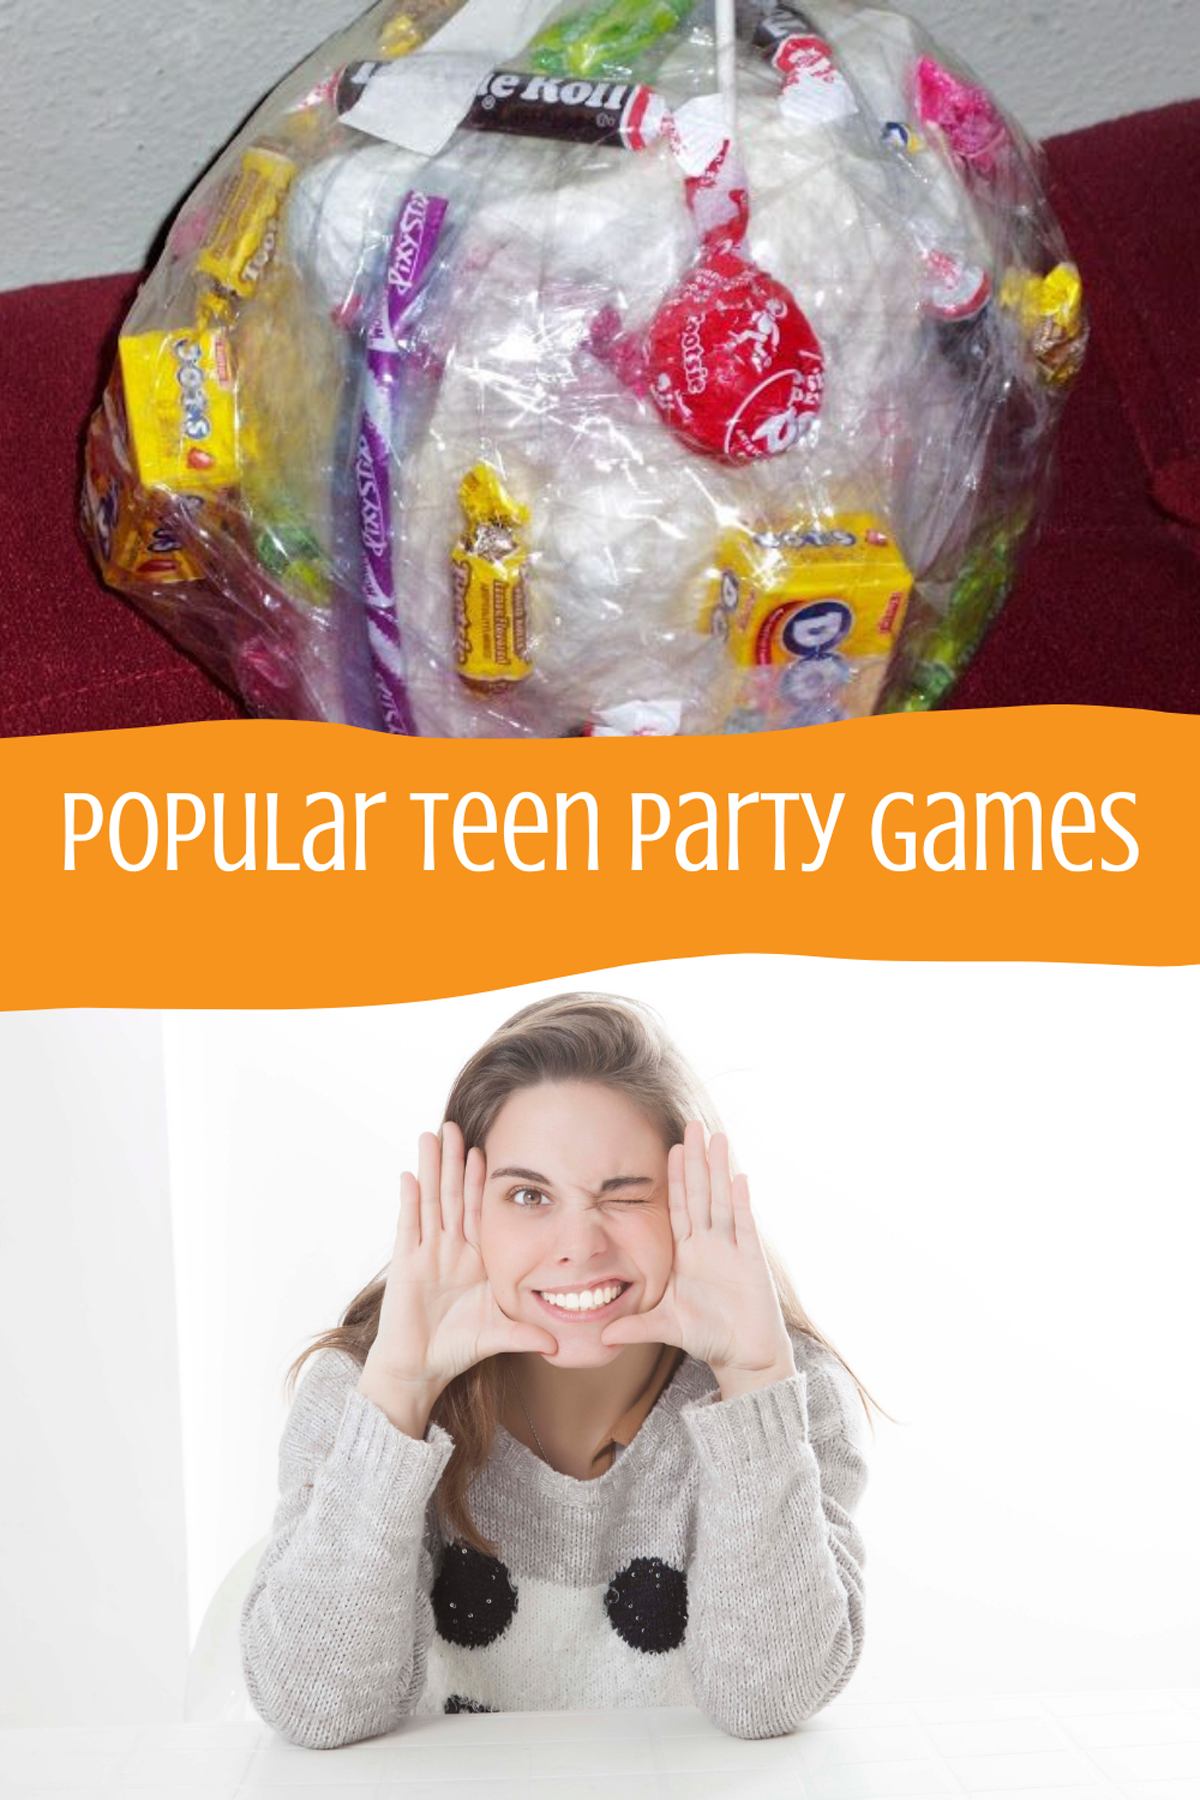 Games to play for teenagers